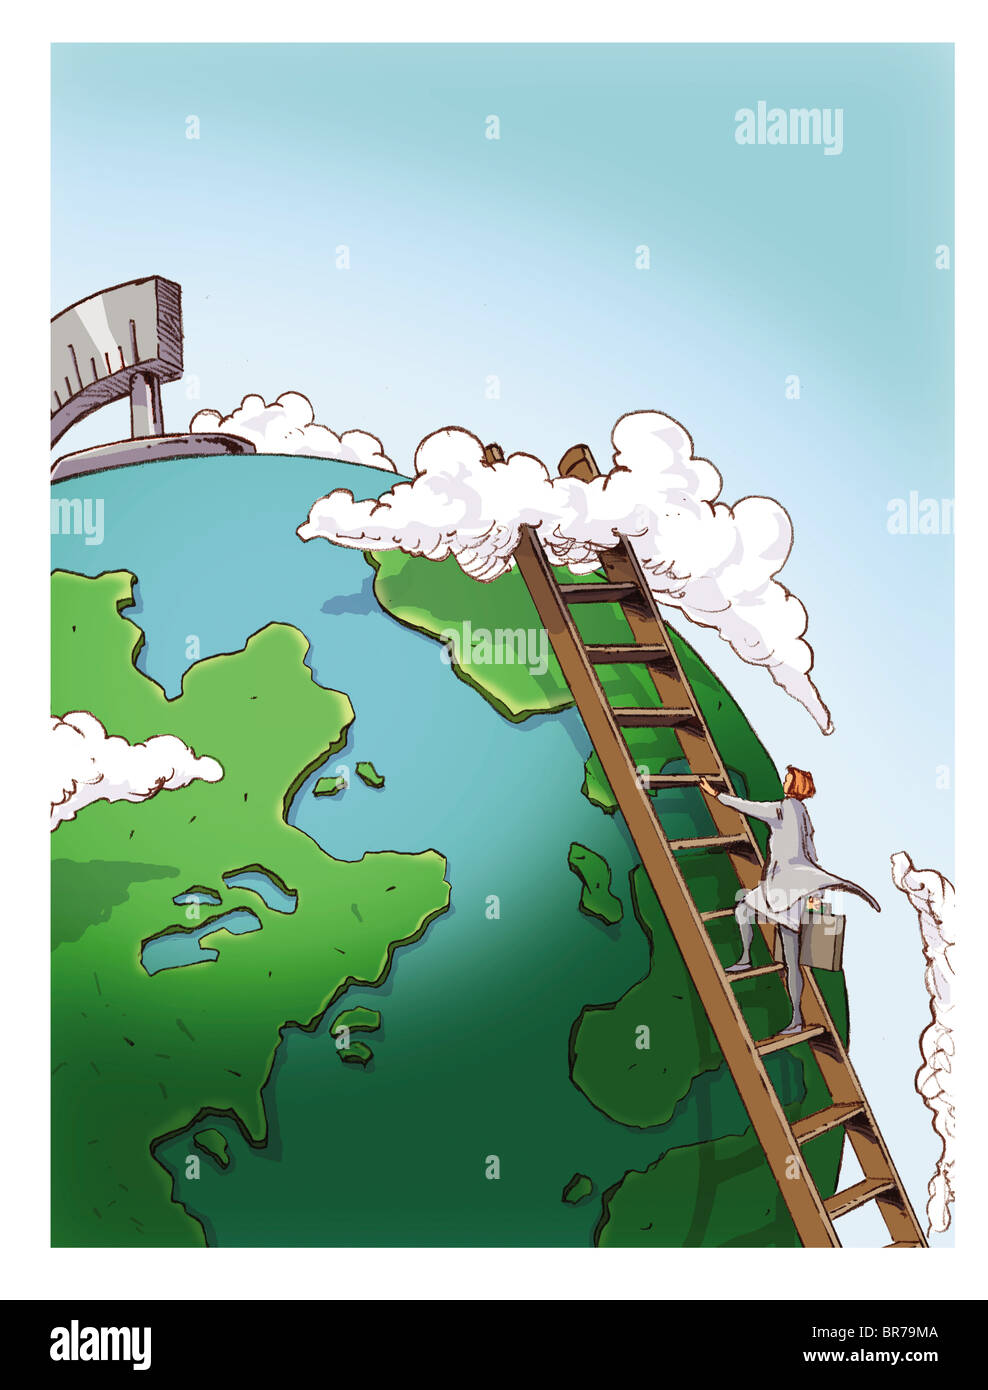 businesswoman climbing up a ladder to get to the top of the globe - Stock Image